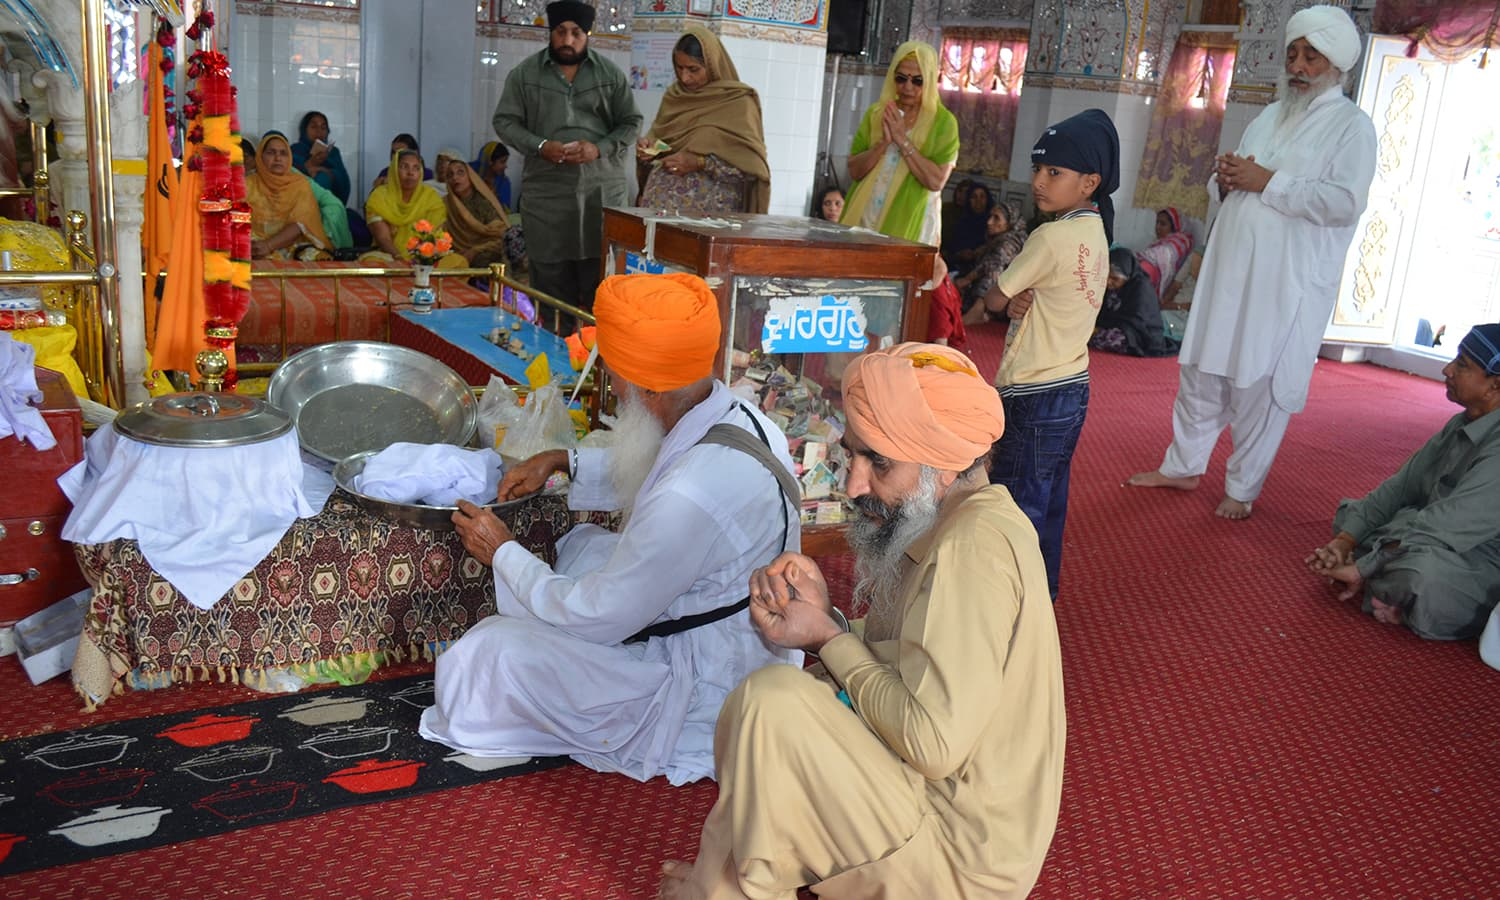 'Parshad' is distributed amongst the pilgrims.